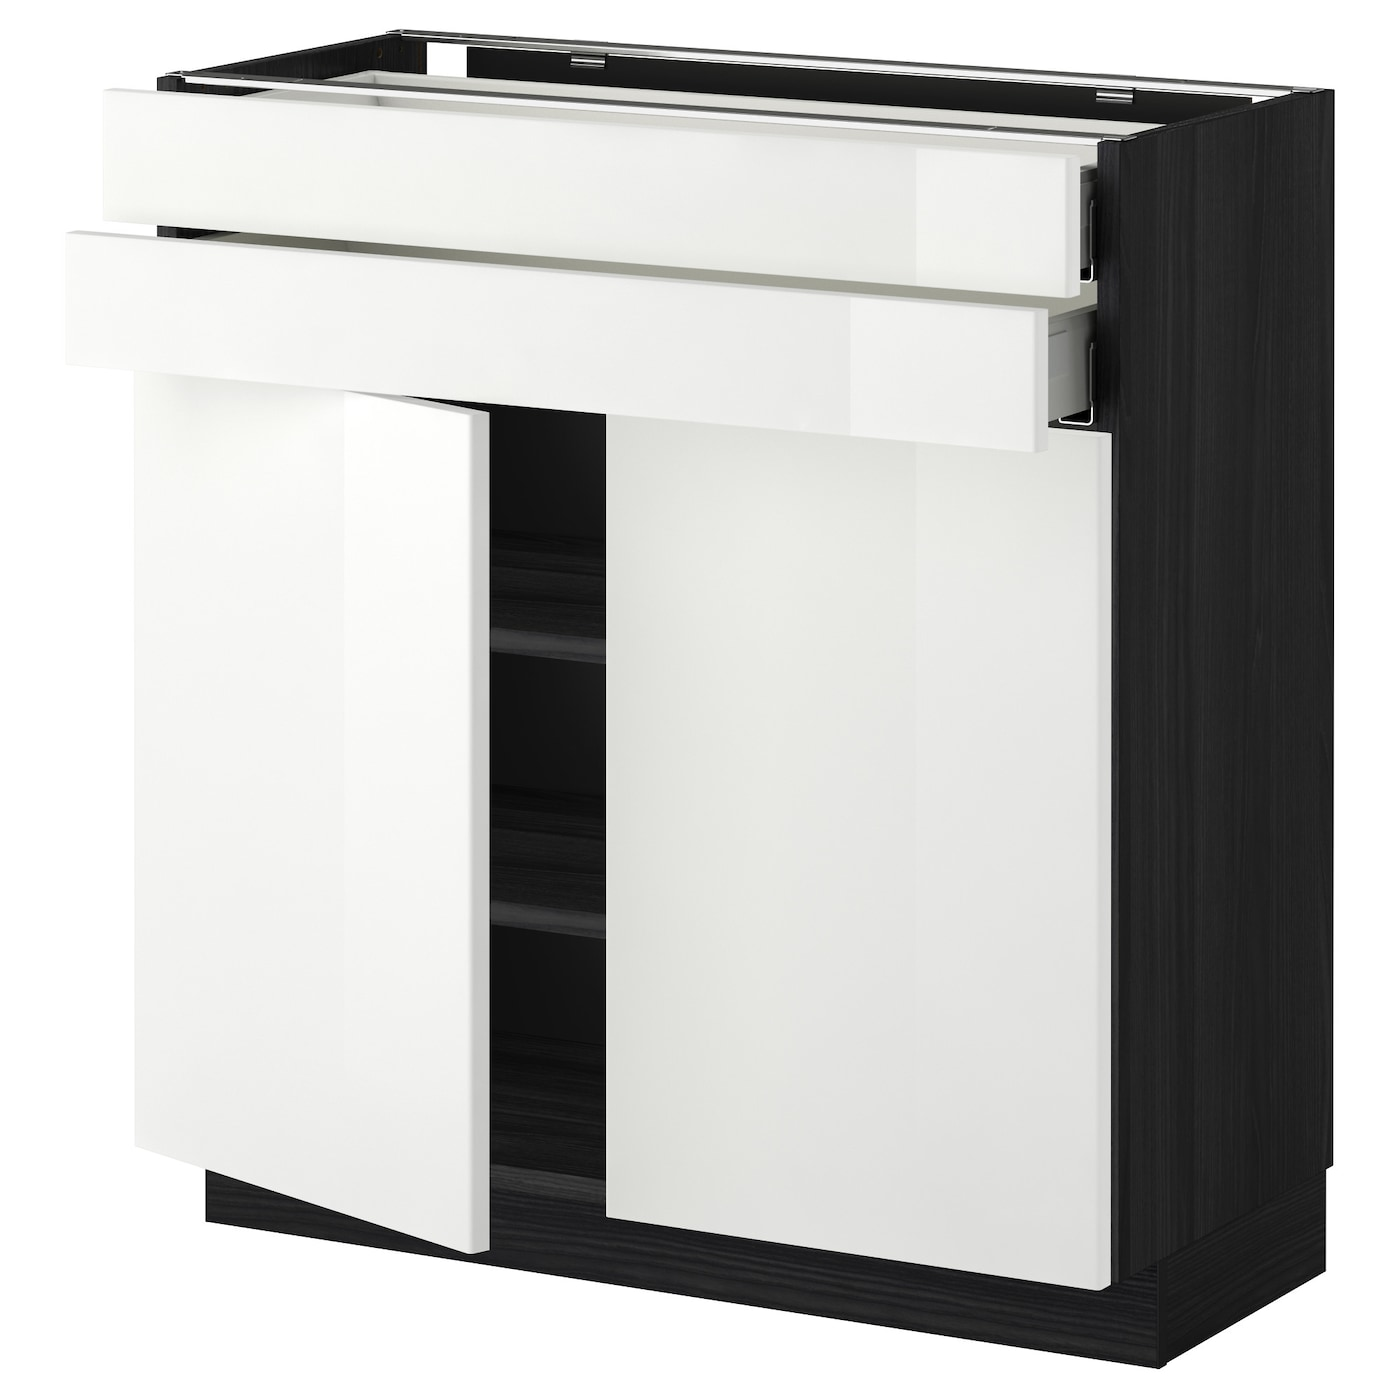 Metod maximera base cabinet w 2 doors 2 drawers black for Black kitchen base cabinets